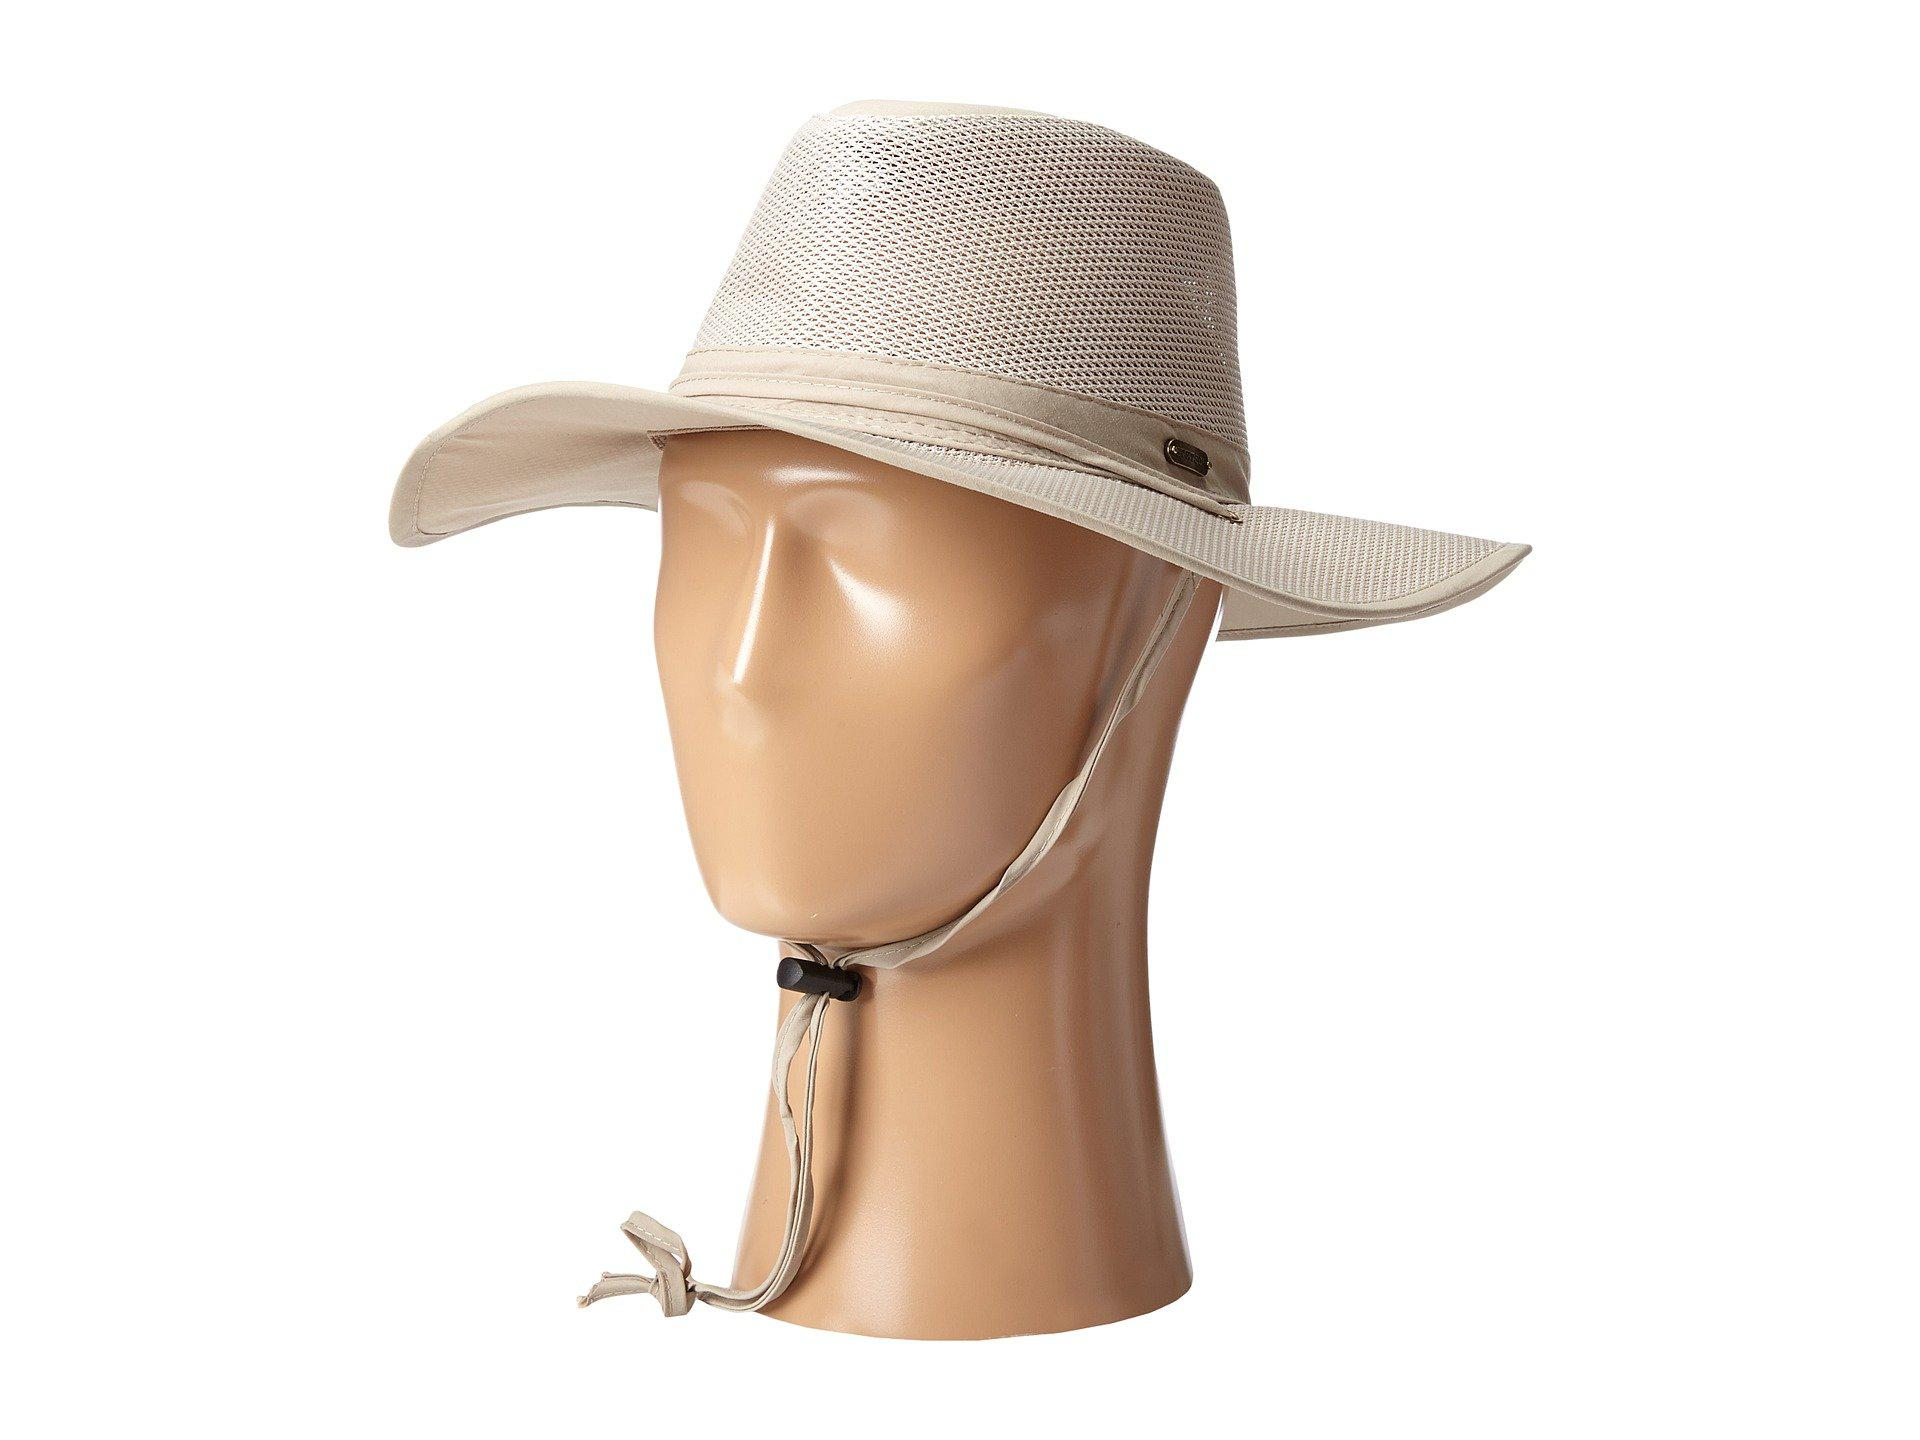 ac00eed5b4d95 Lyst - Stetson Big Brim Mesh Safari With No Fly Zone Insect Shield ...